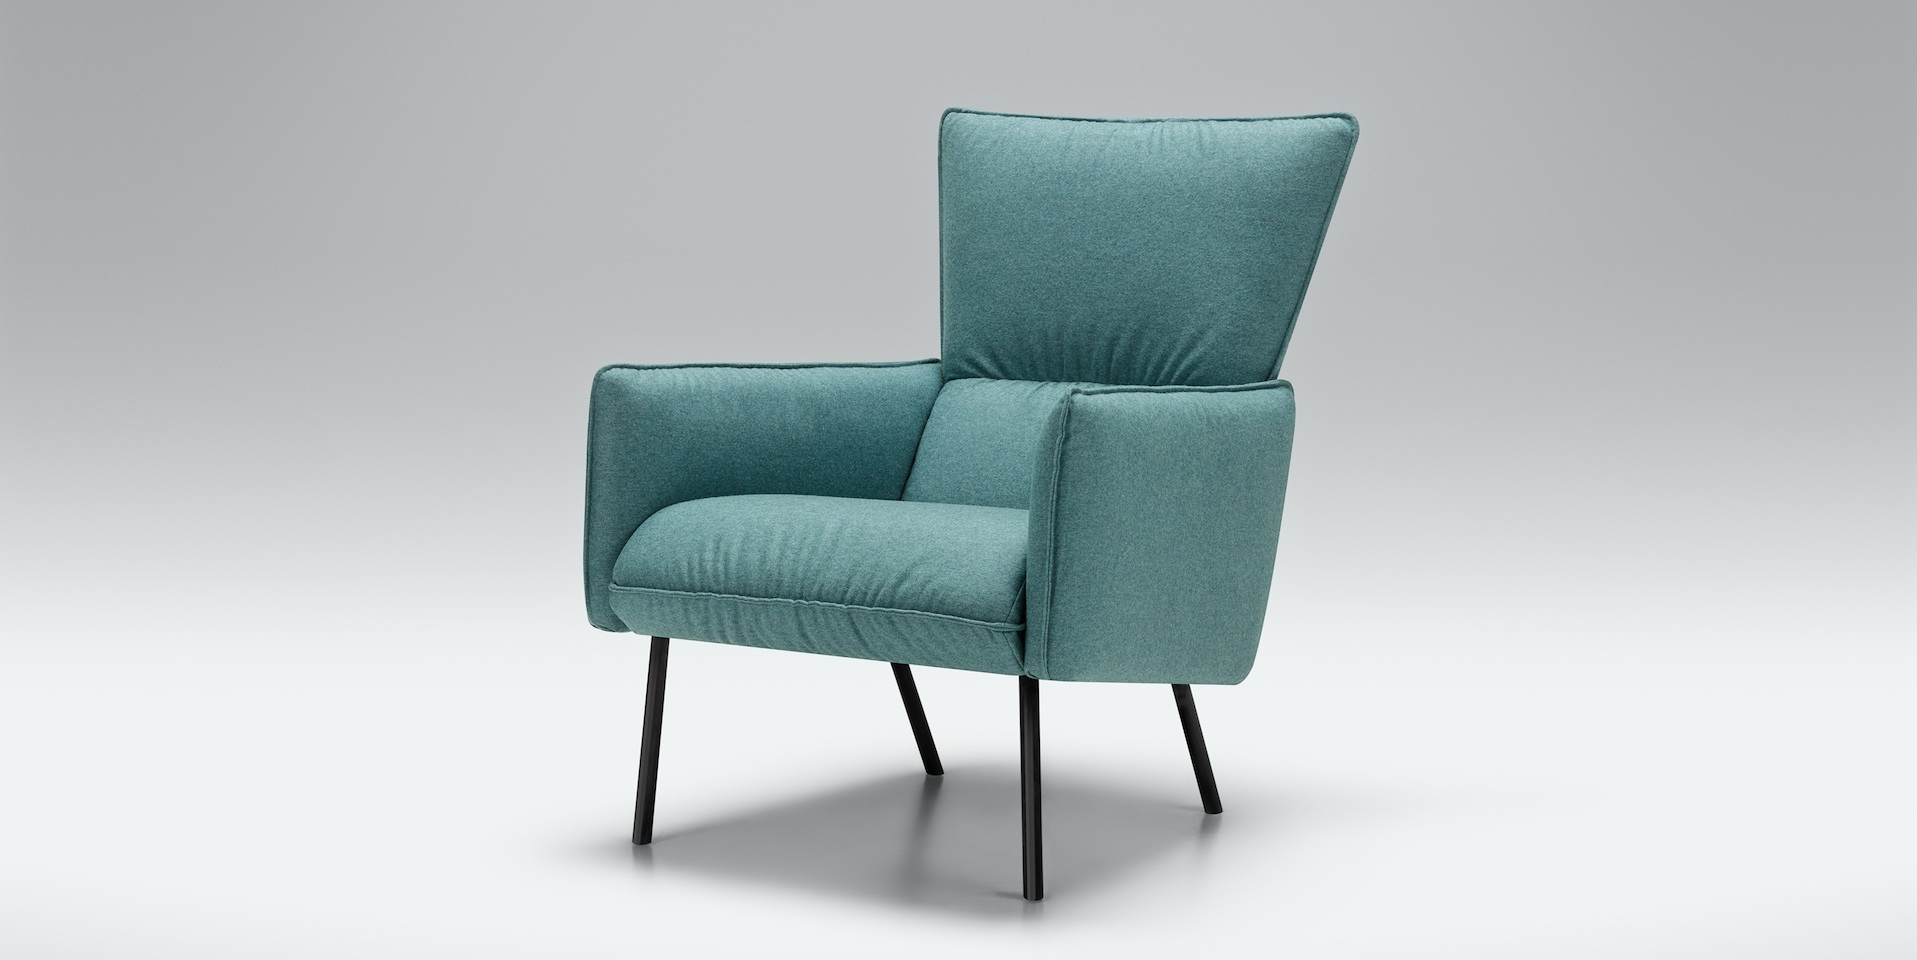 HARRY_shadow_armchair_malva8_ash_turquoise_2